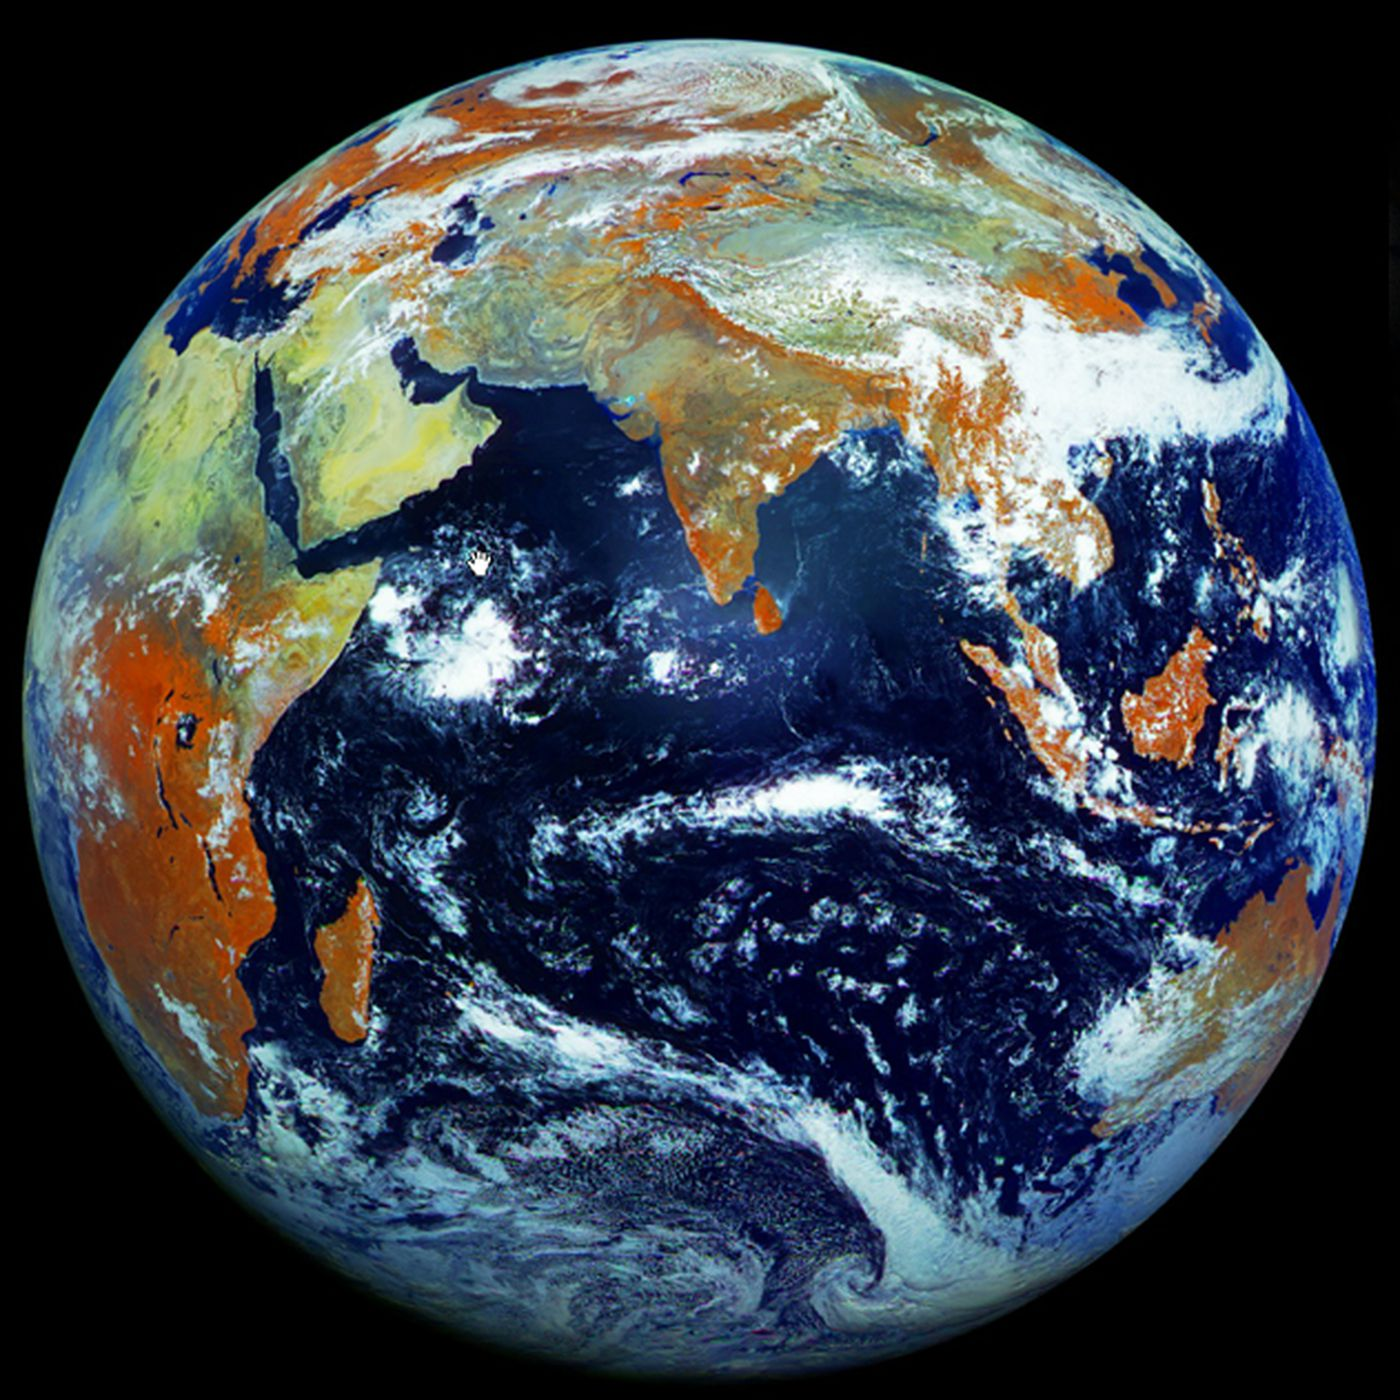 Russian Satellite S 121 Megapixel Image Of Earth Is Most